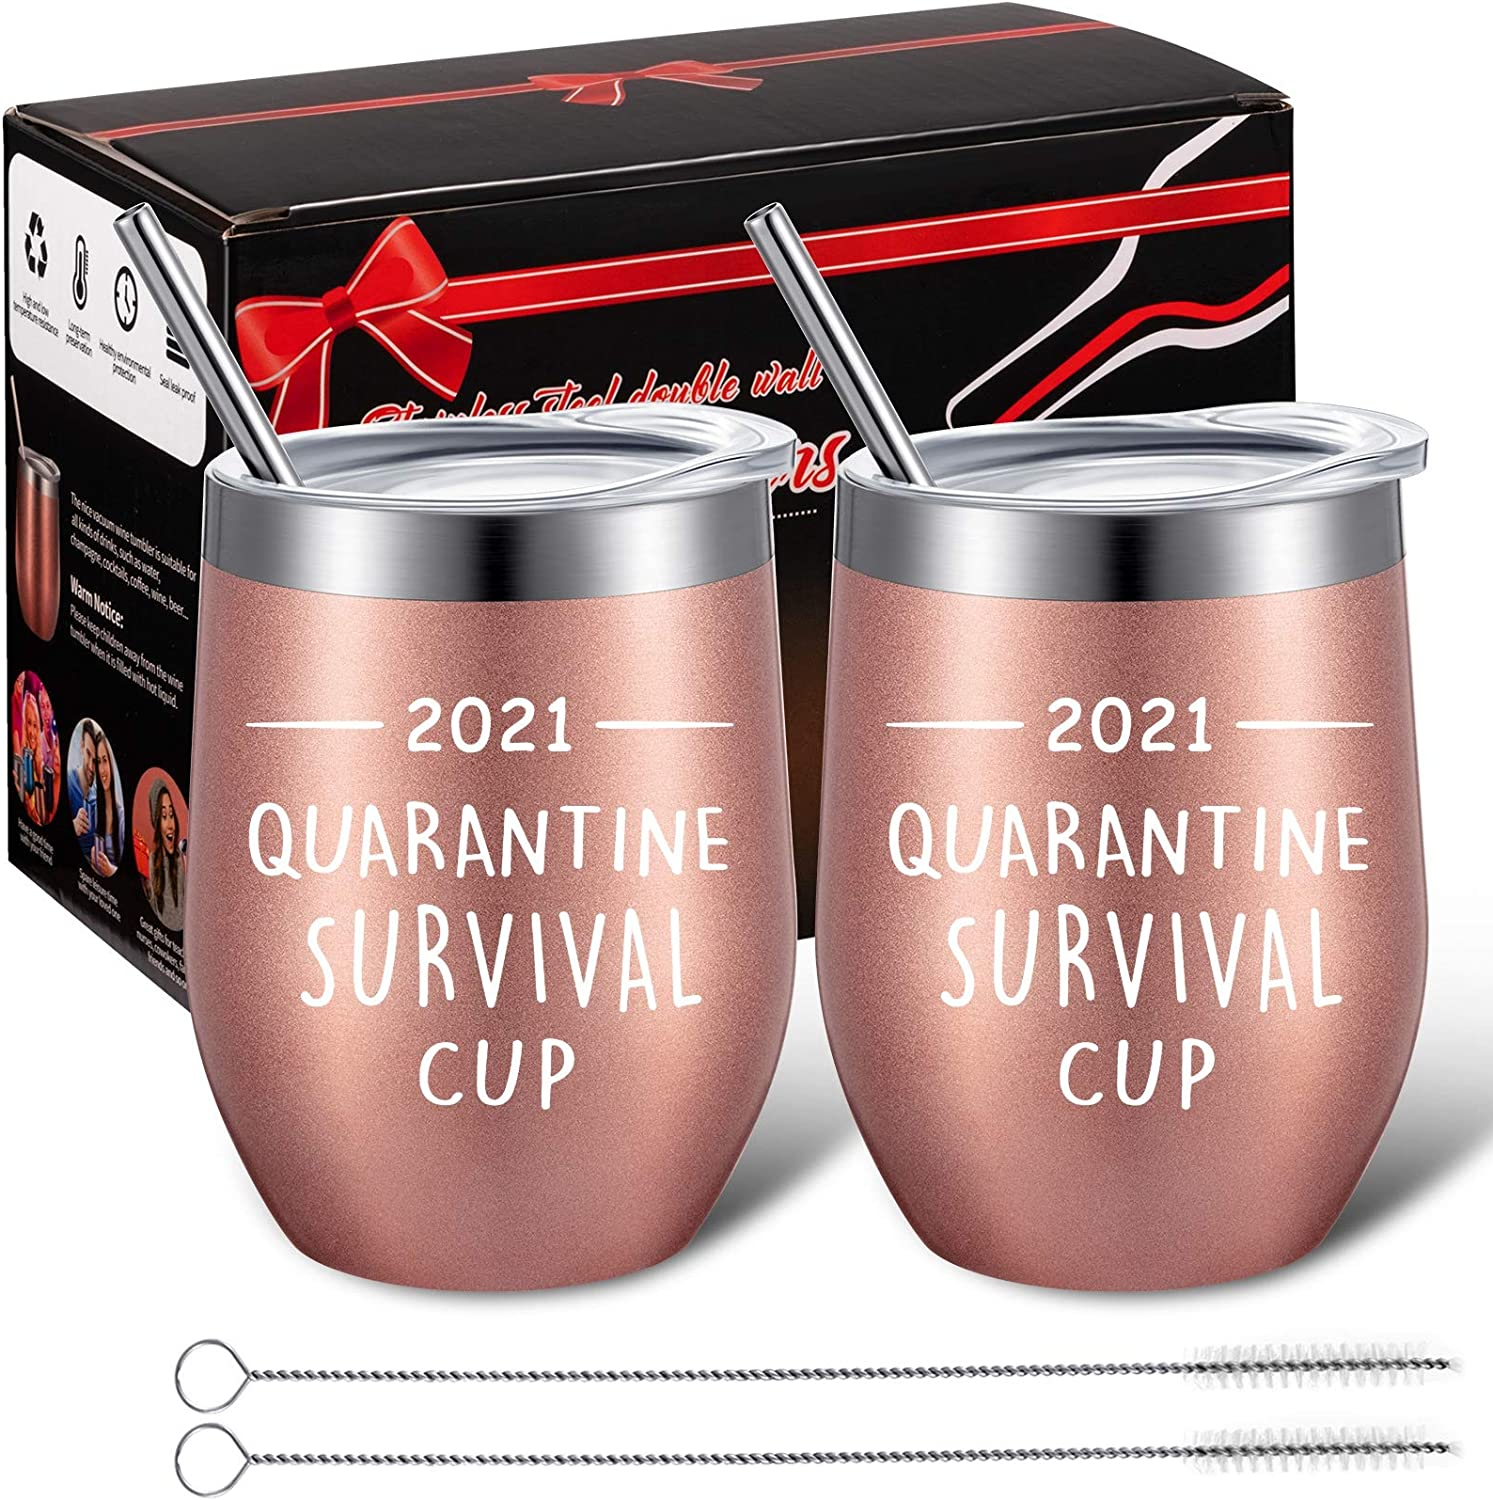 2 Packs 2021 Quarantine Survival Cup Funny Stay at Home Gifts Coffee Mug, Graduation Appreciation Present for Friends, Teachers, Coworkers, 12 oz Vacuum Insulated Wine Tumbler with Lid (Rose Gold)